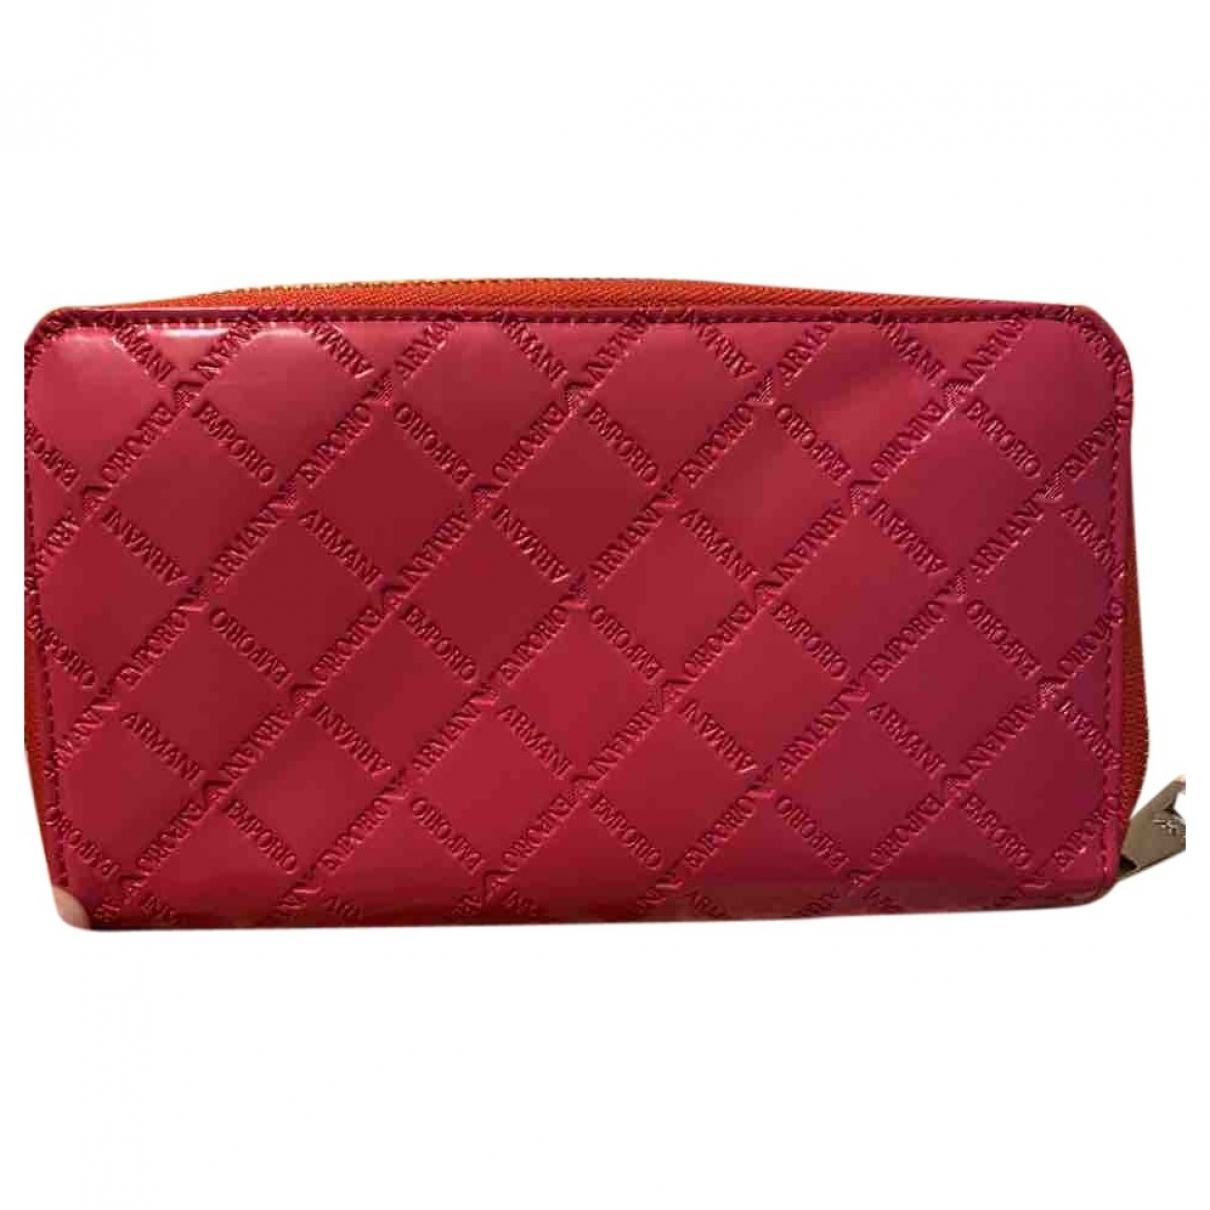 Emporio Armani \N Pink Patent leather wallet for Women \N